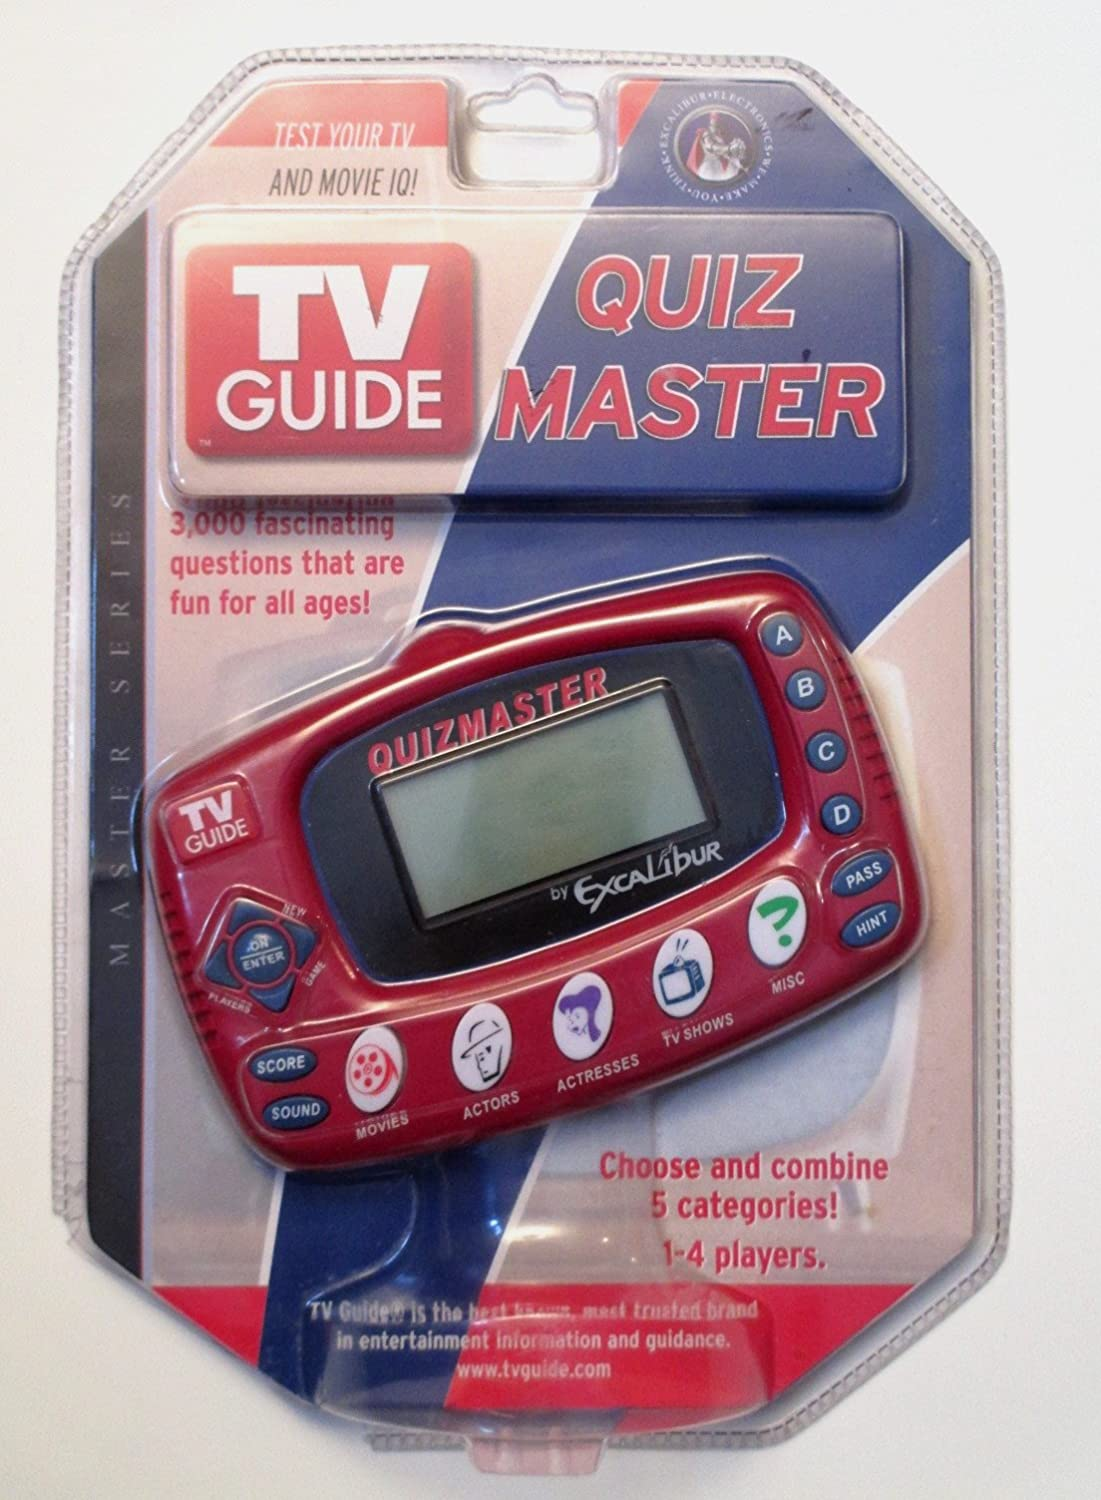 EXCALIBUR High quality new ELECTRONIC TV Guide Quiz Easy-to-use Electronic Master TV20 Game